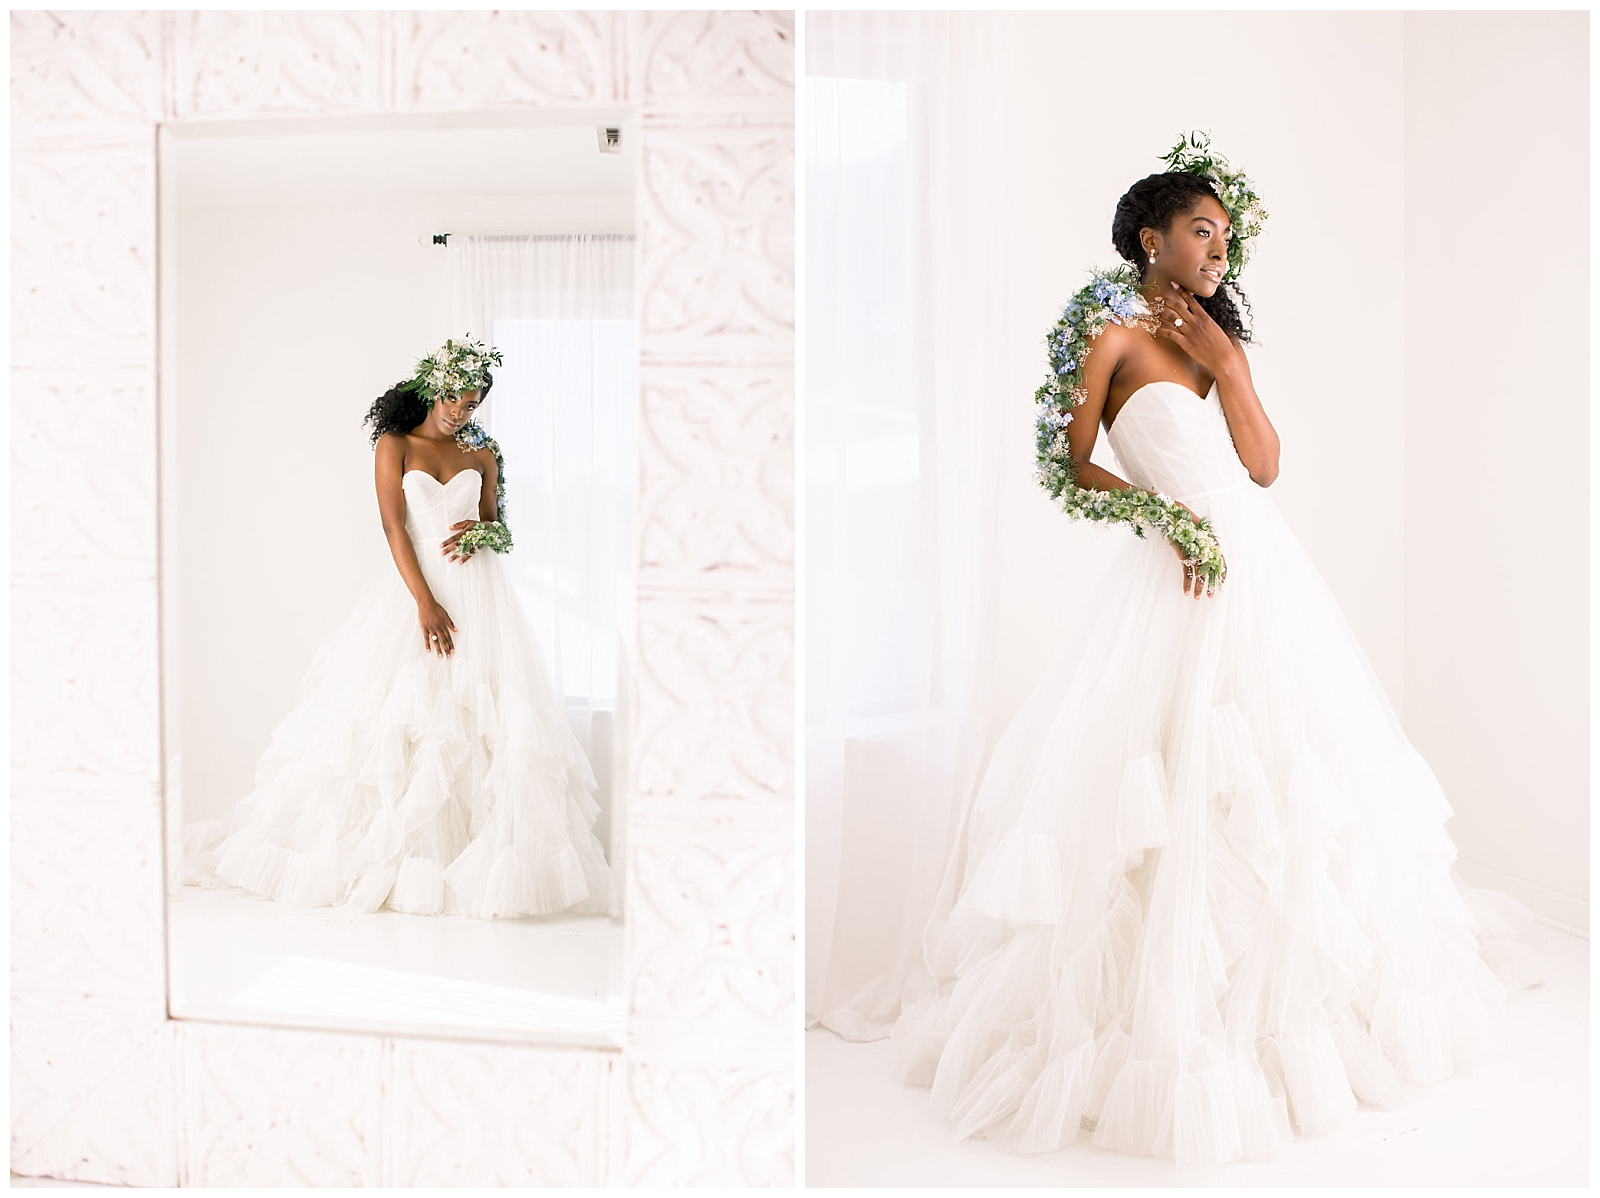 Living-Accessories-styled-shoot-de-joy-photography-epiphany-boutique-floral.jpg